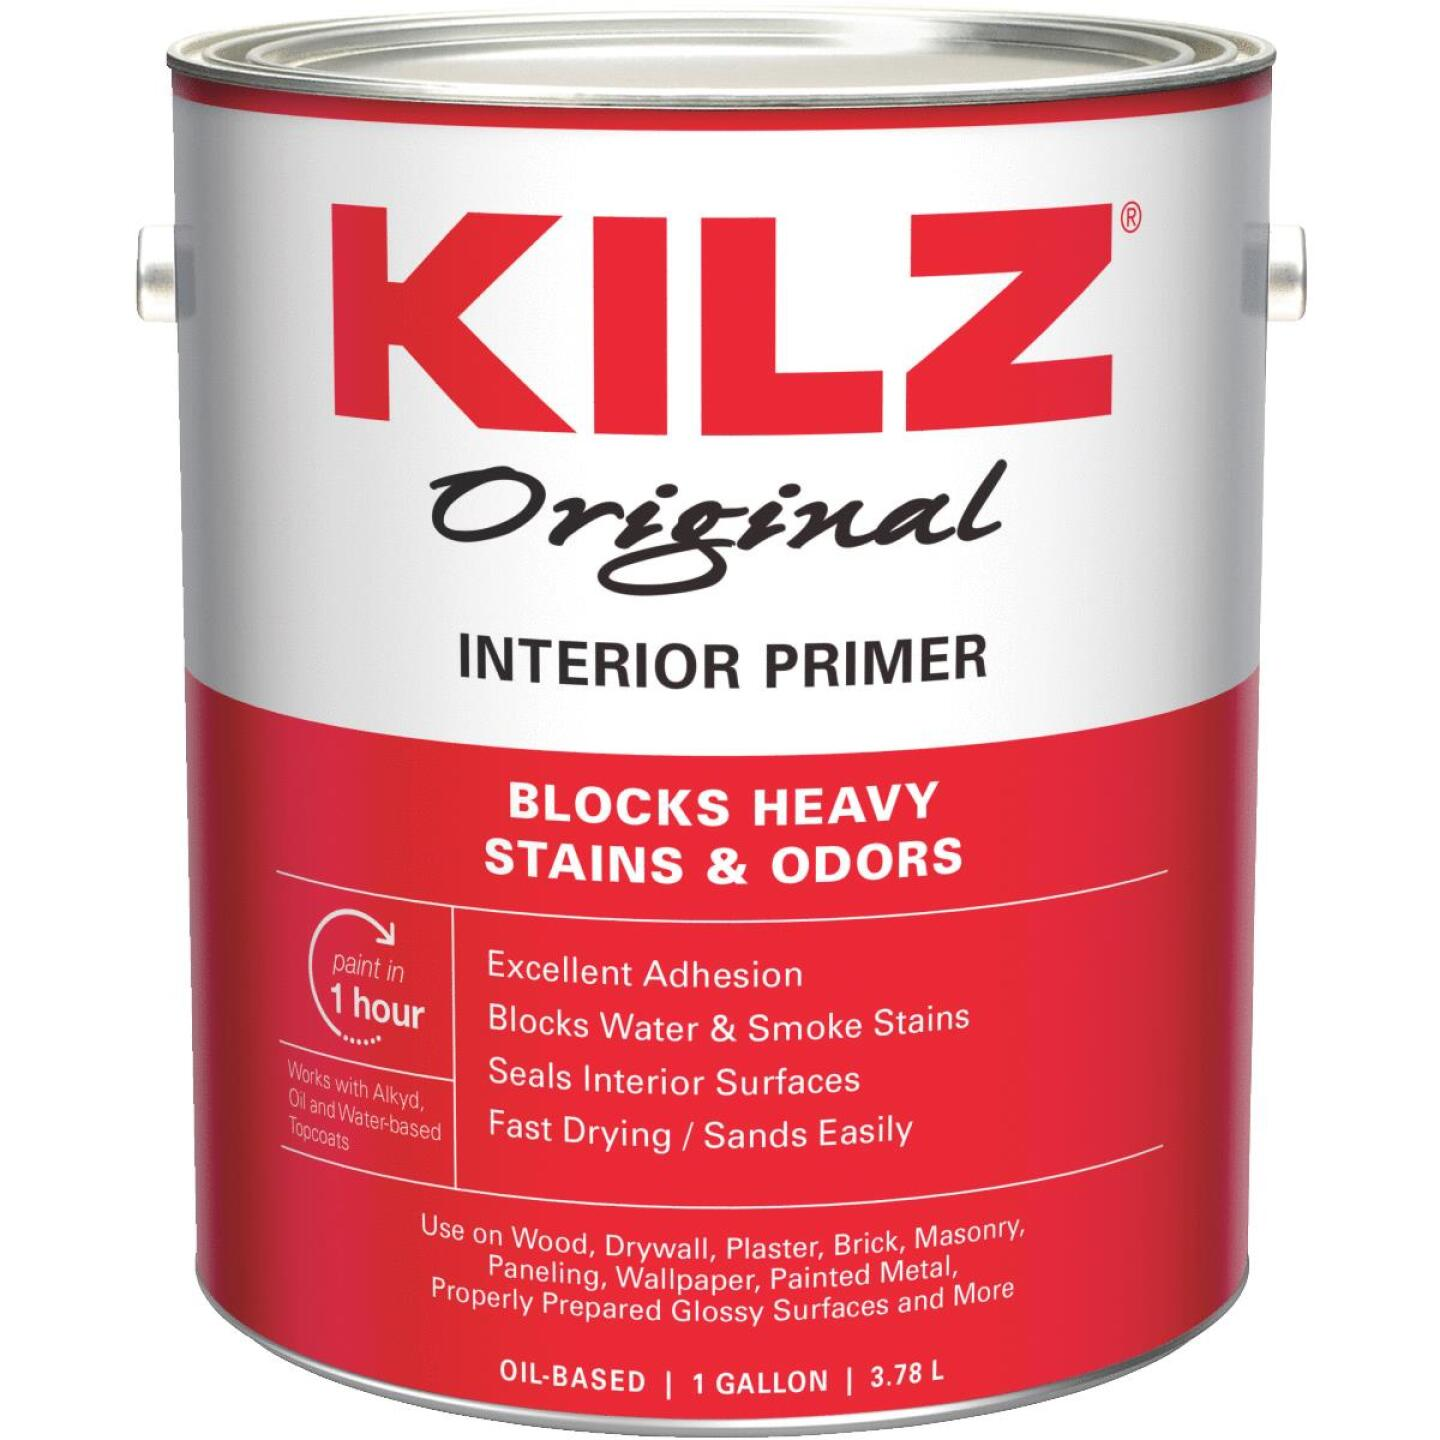 Kilz Original Oil-Based Interior Primer Sealer Stainblocker, White, 1 Gal. Image 1